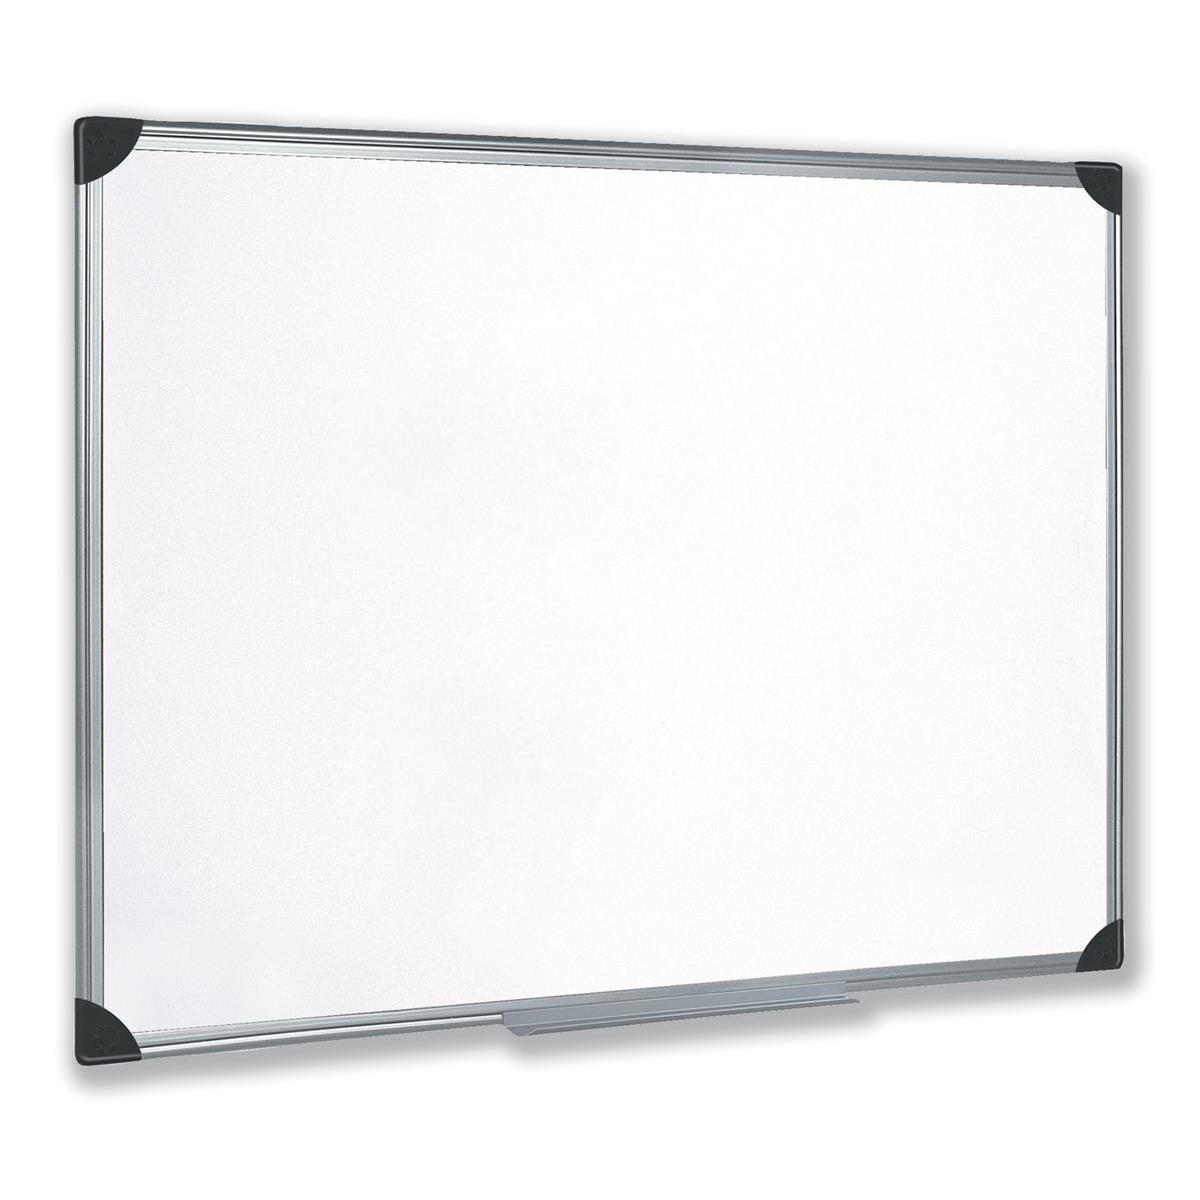 5 Star Whiteboard Drywipe Magnetic with Pen Tray and Aluminium Trim 900x600mm